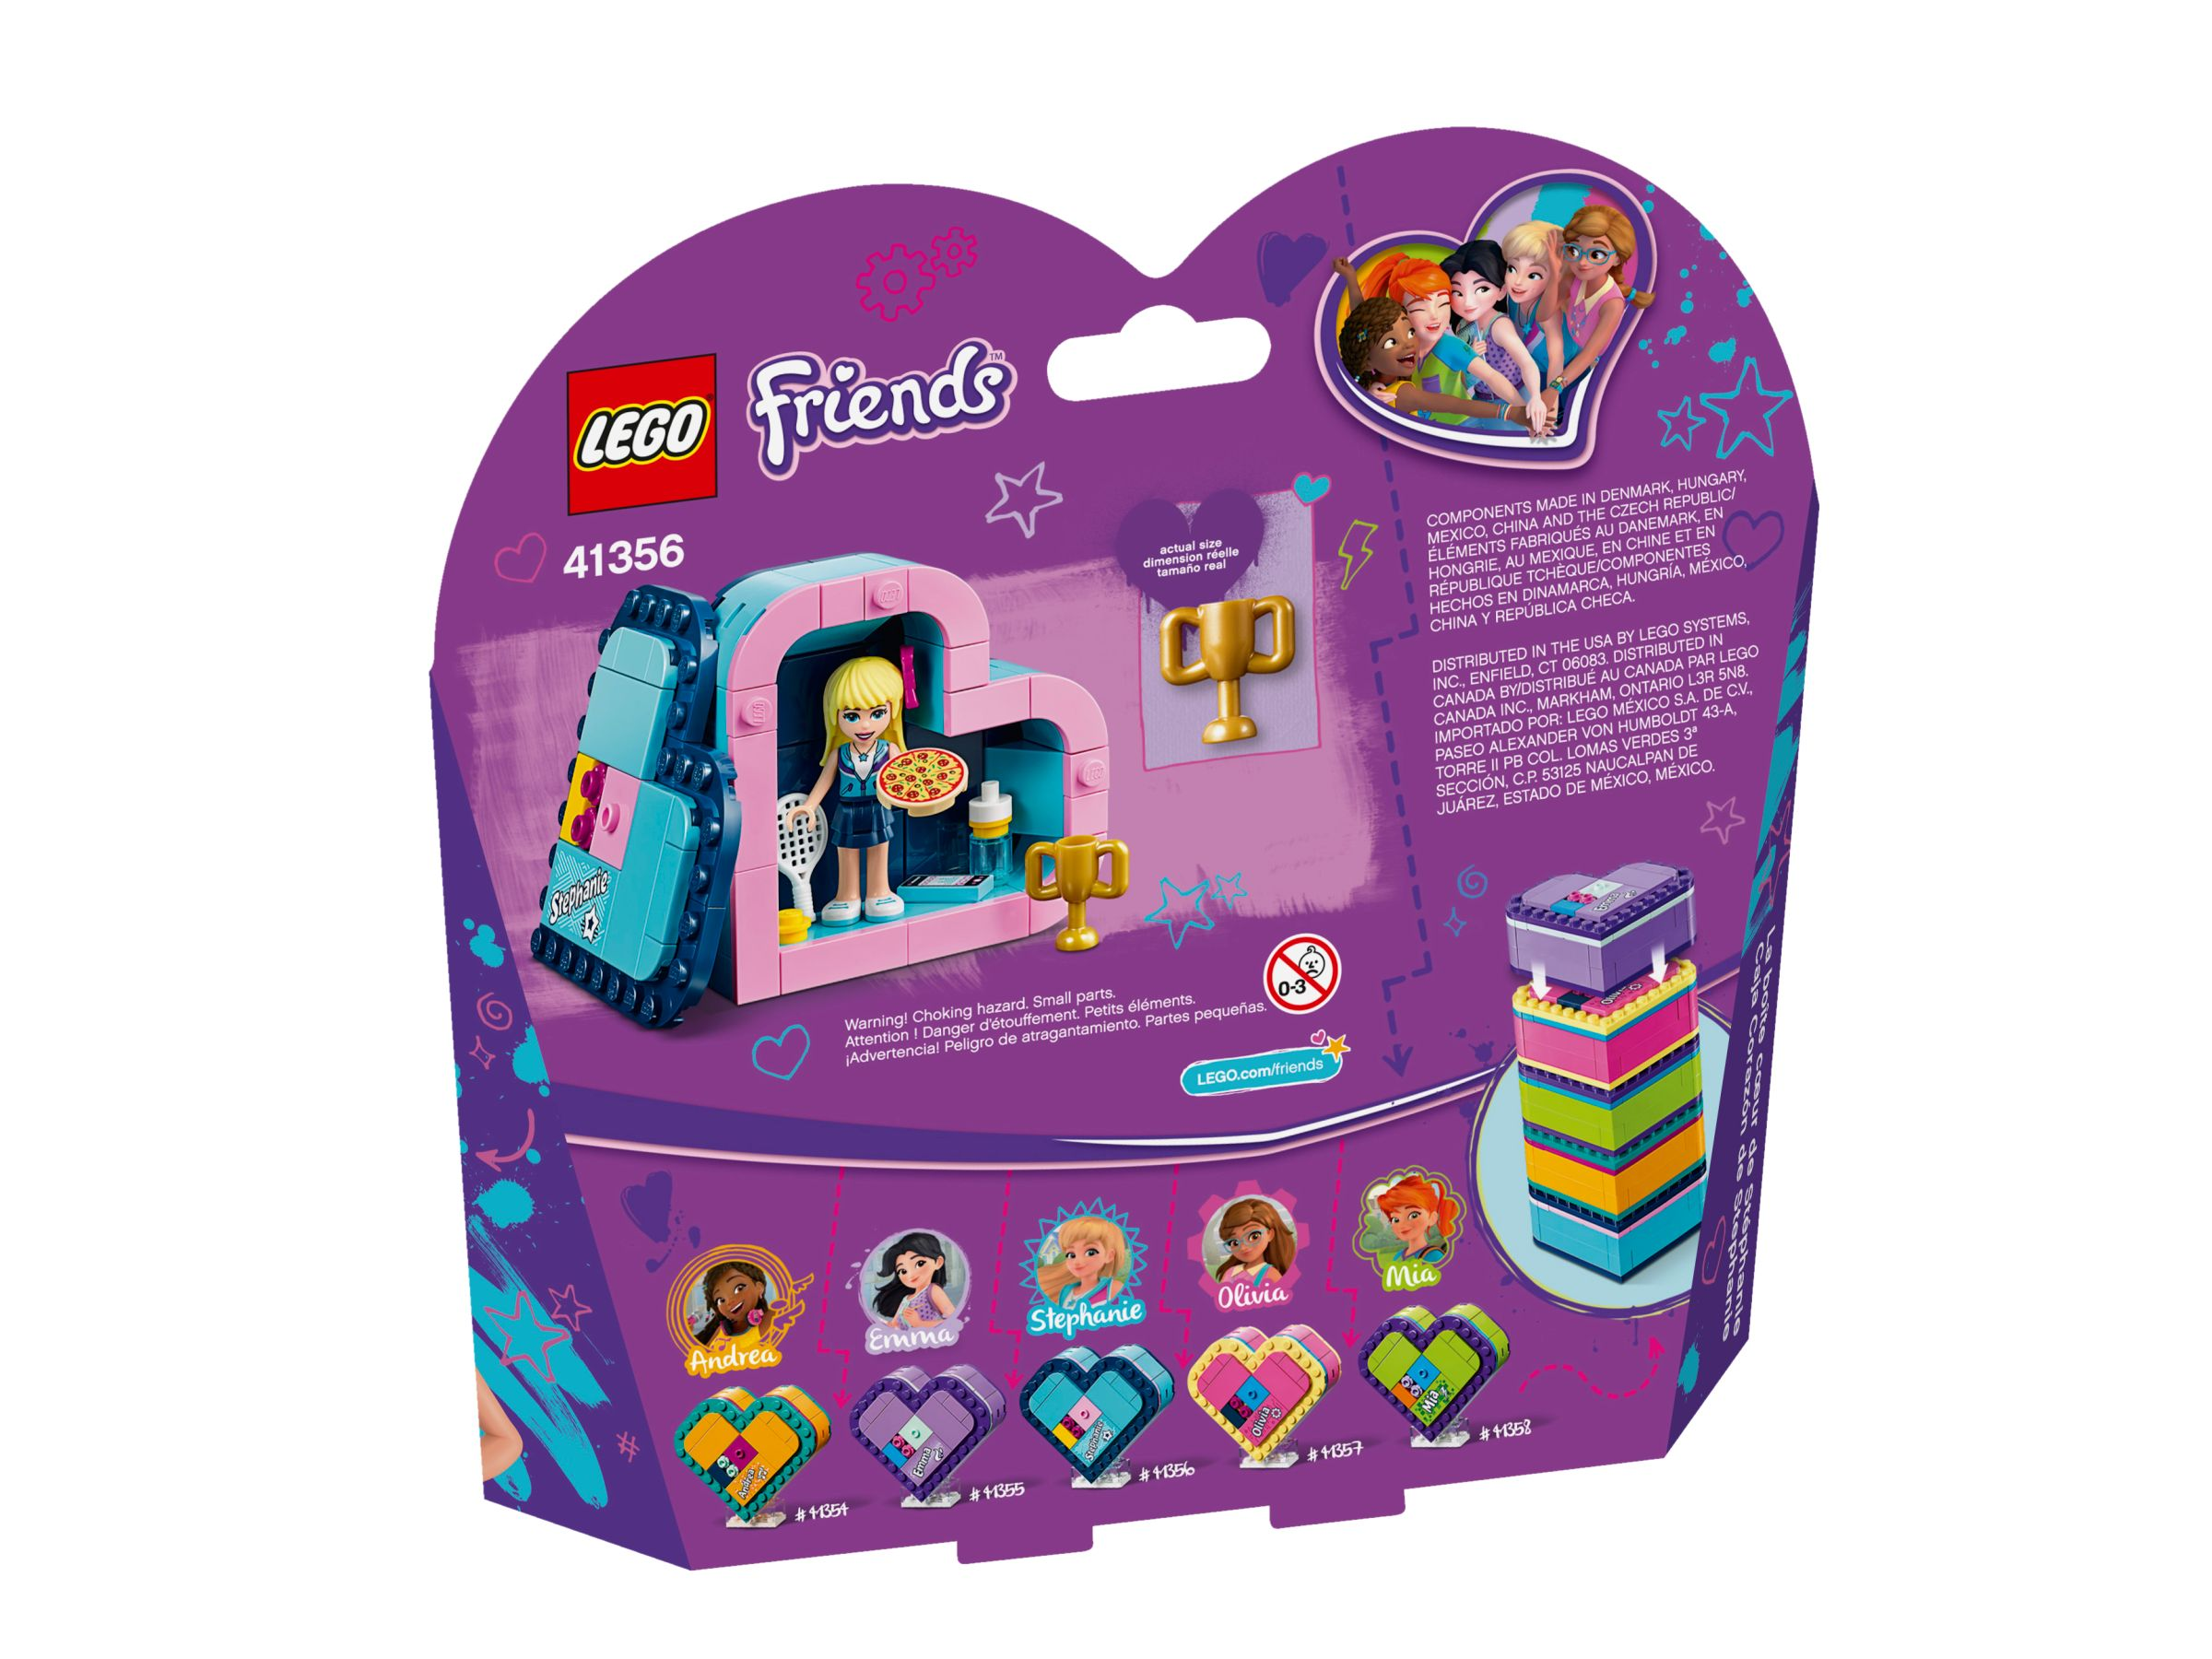 LEGO Friends 41356 Stephanies Herzbox LEGO_41356_alt4.jpg